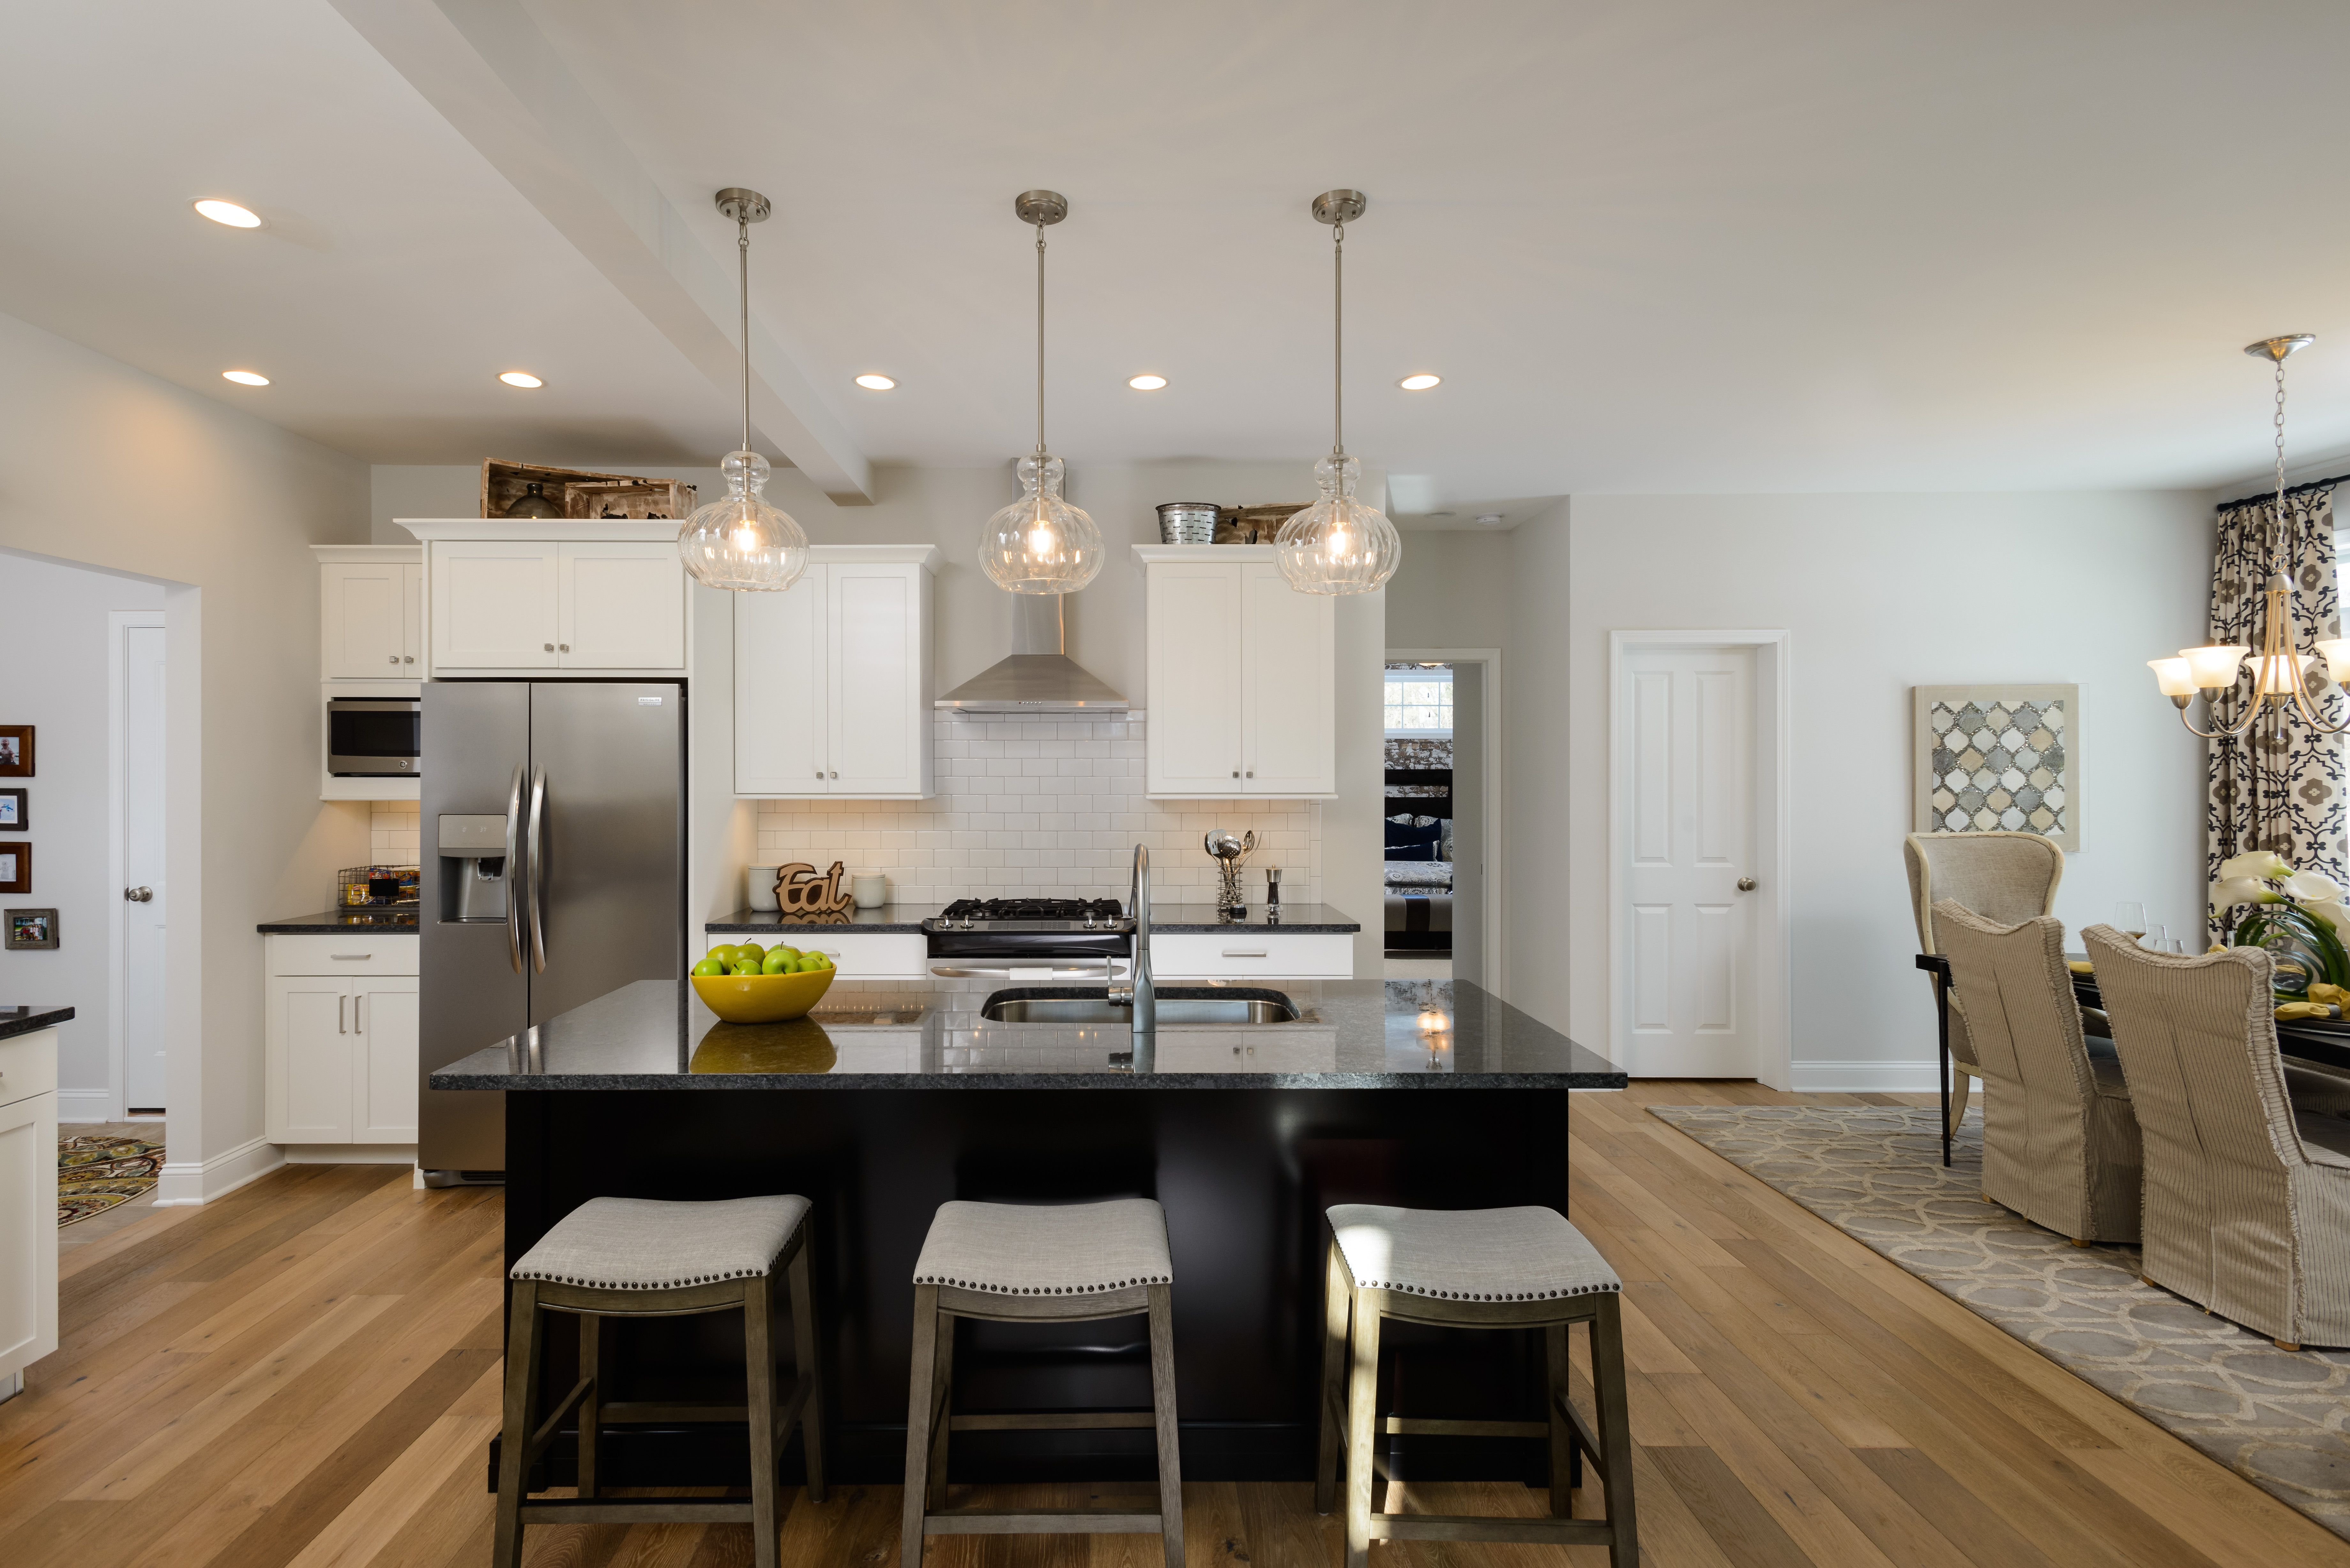 Kitchen featured in the Chesapeake By Belmonte Builders in Albany-Saratoga, NY